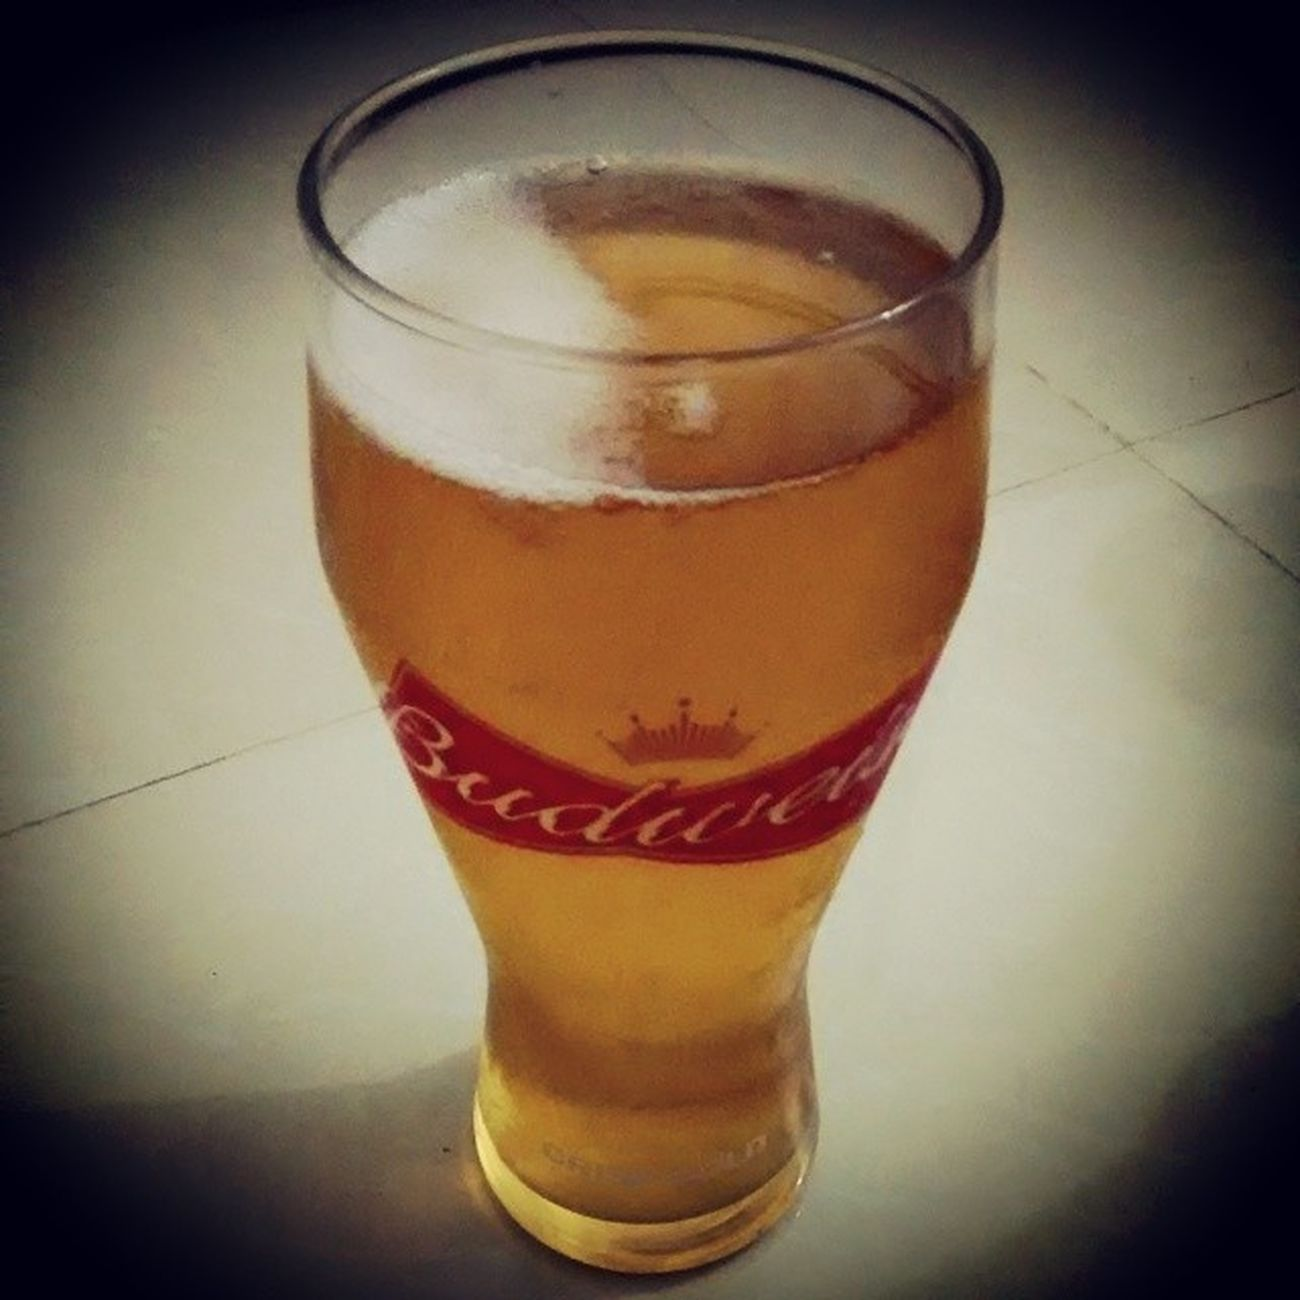 My all time love. Beer Chilled Theremedyofscorchingheat Love midweekchilling budweiser instaaddict instamood